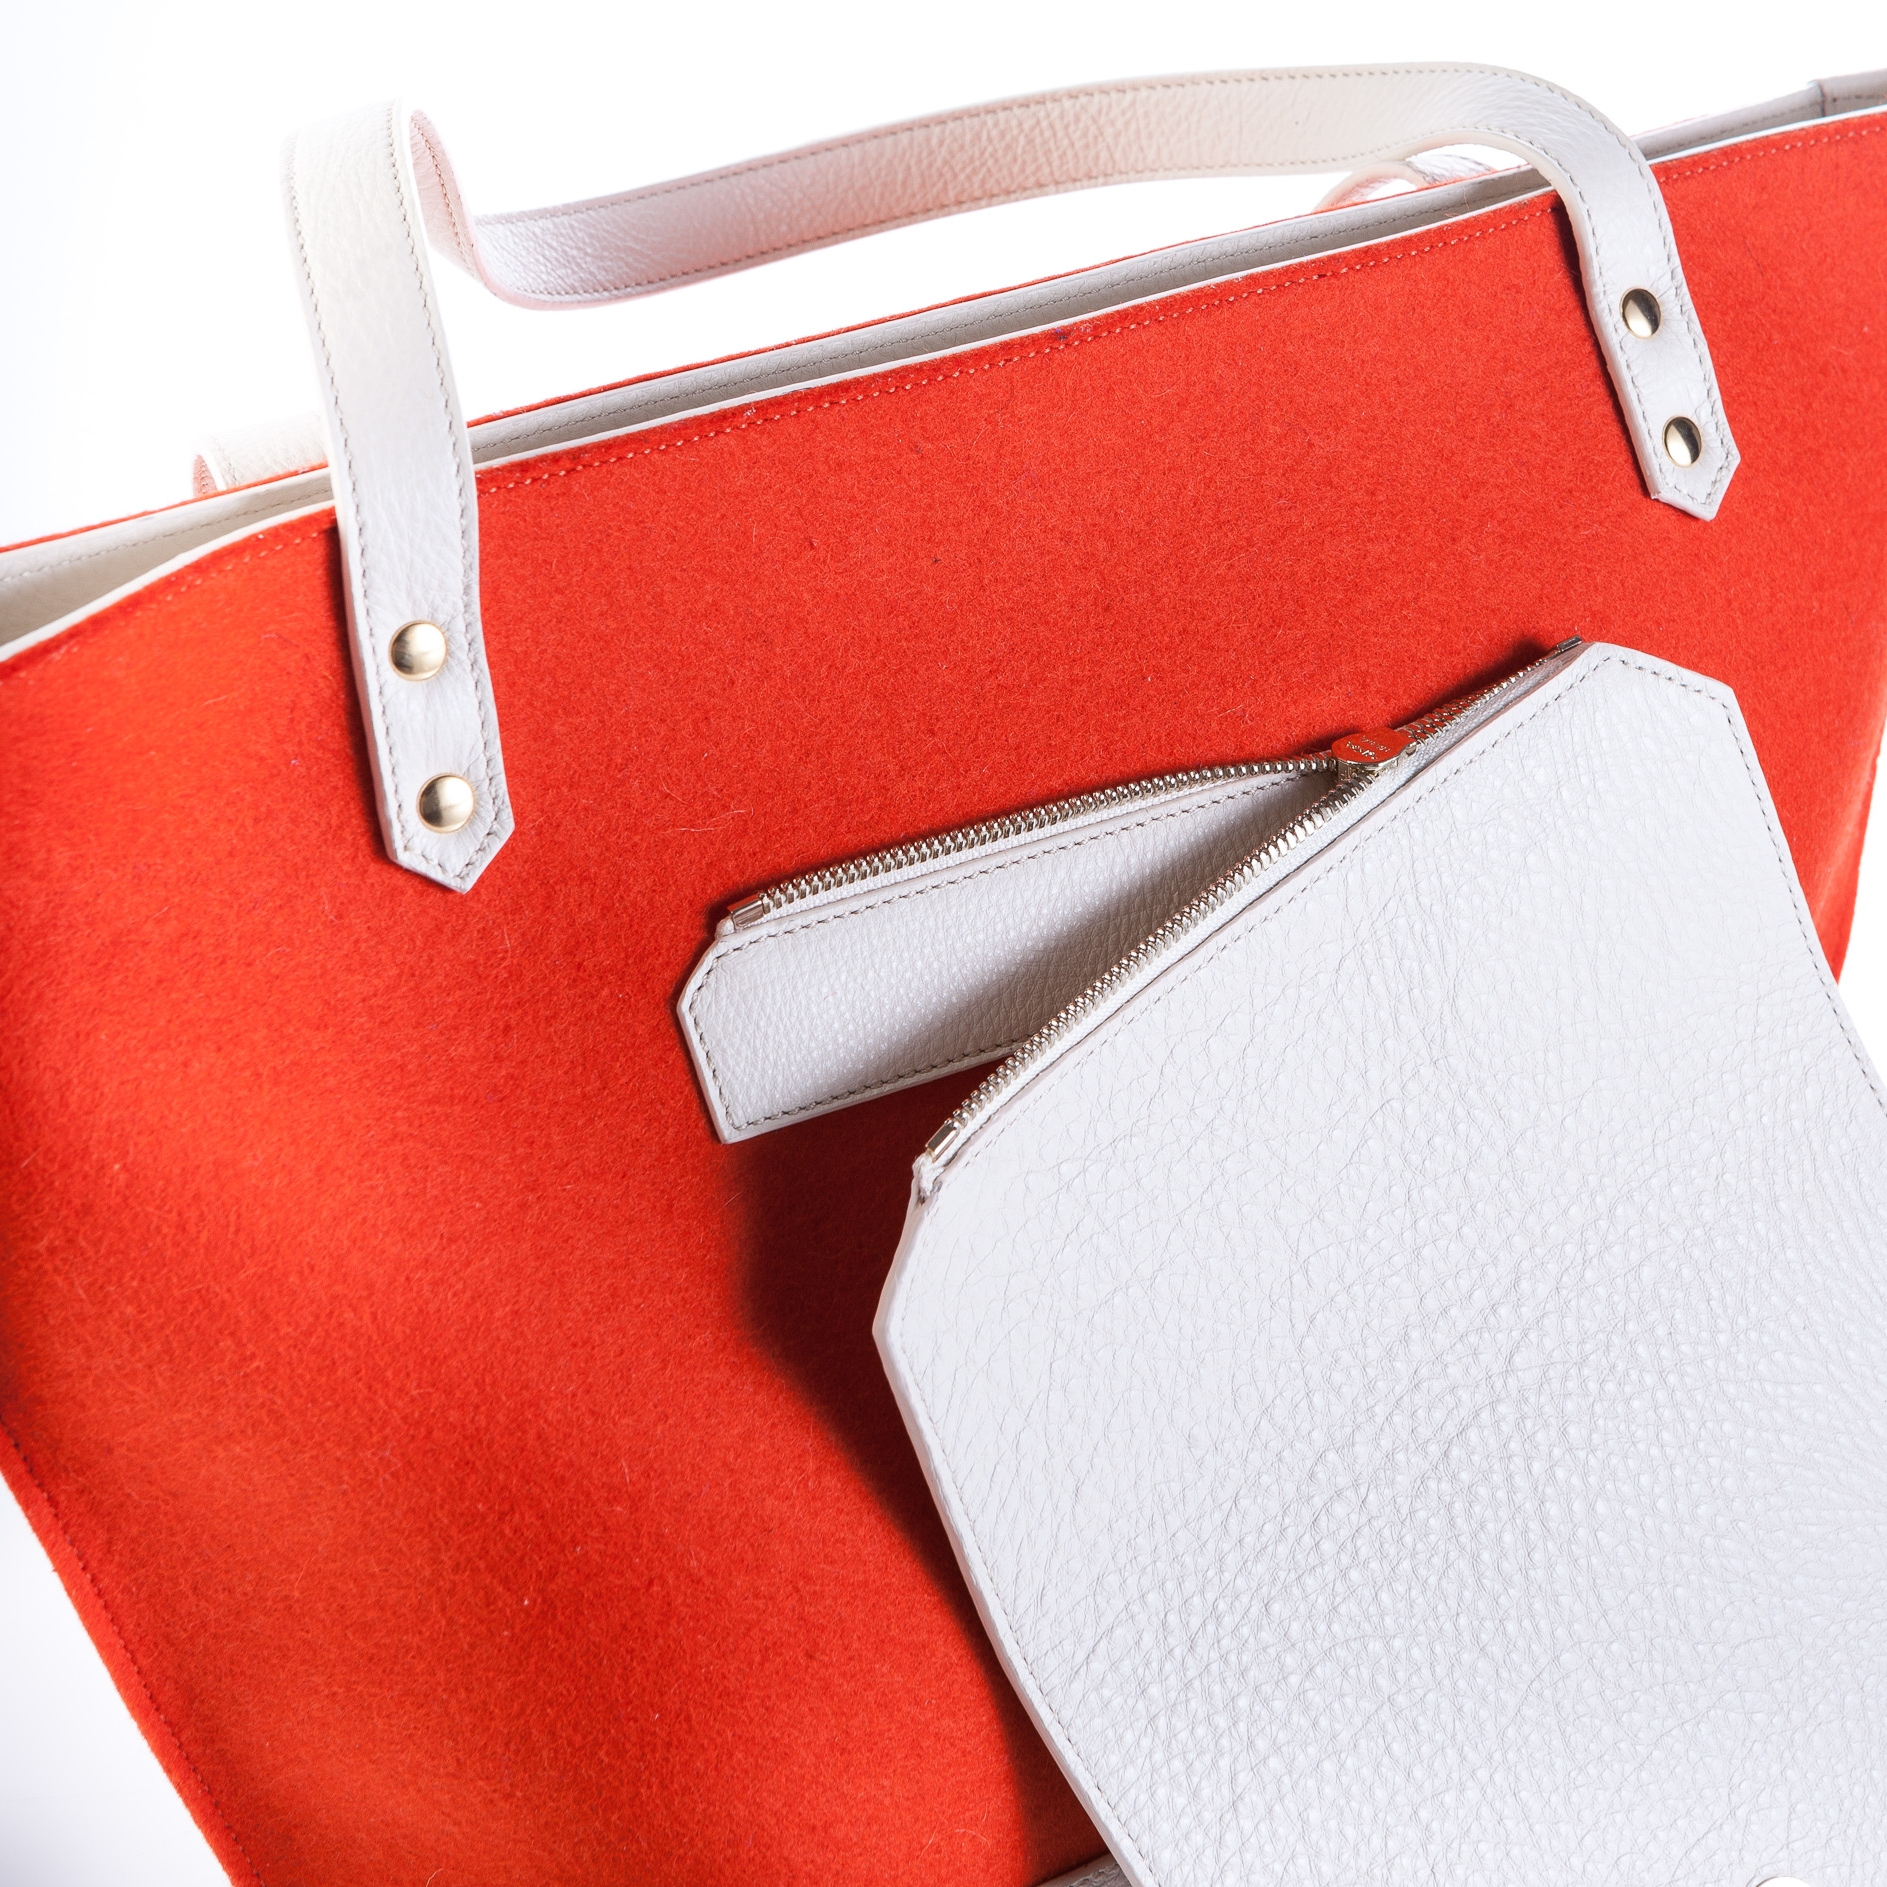 Concept - TTWINN handbags feature a concept of interchangeable flaps giving modern women flexibility in choosing their style by mixing and matching the flaps across the entire TTWINN collection. Every flap is standardized in size and is attached to a bag by zipper making it effortless to change the flaps. By offering various types and styles of flaps we aim to give our customers freedom to express themselves and create their perfect style.